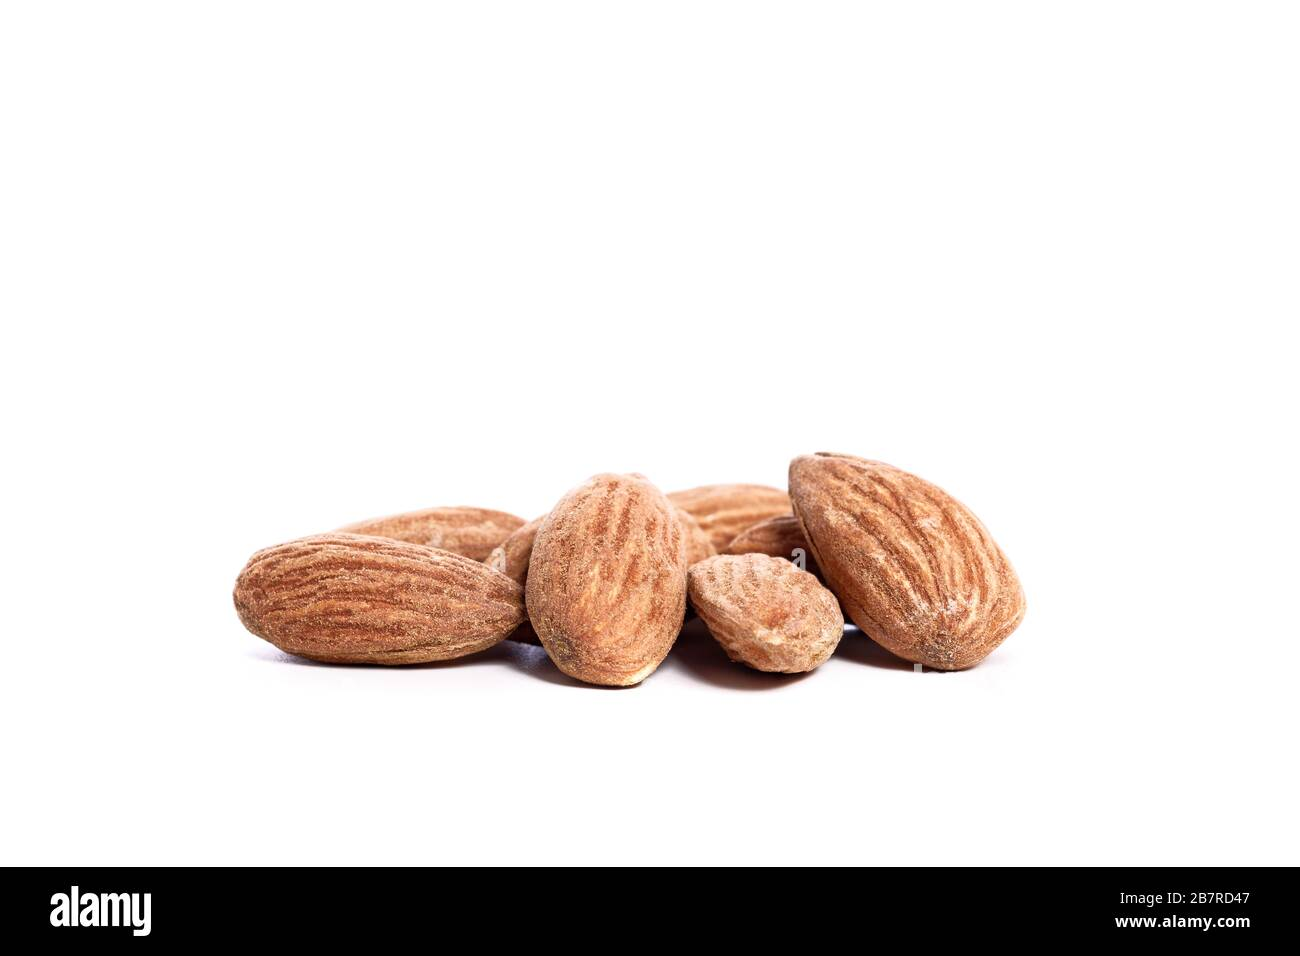 Salted almonds on a white background Stock Photo